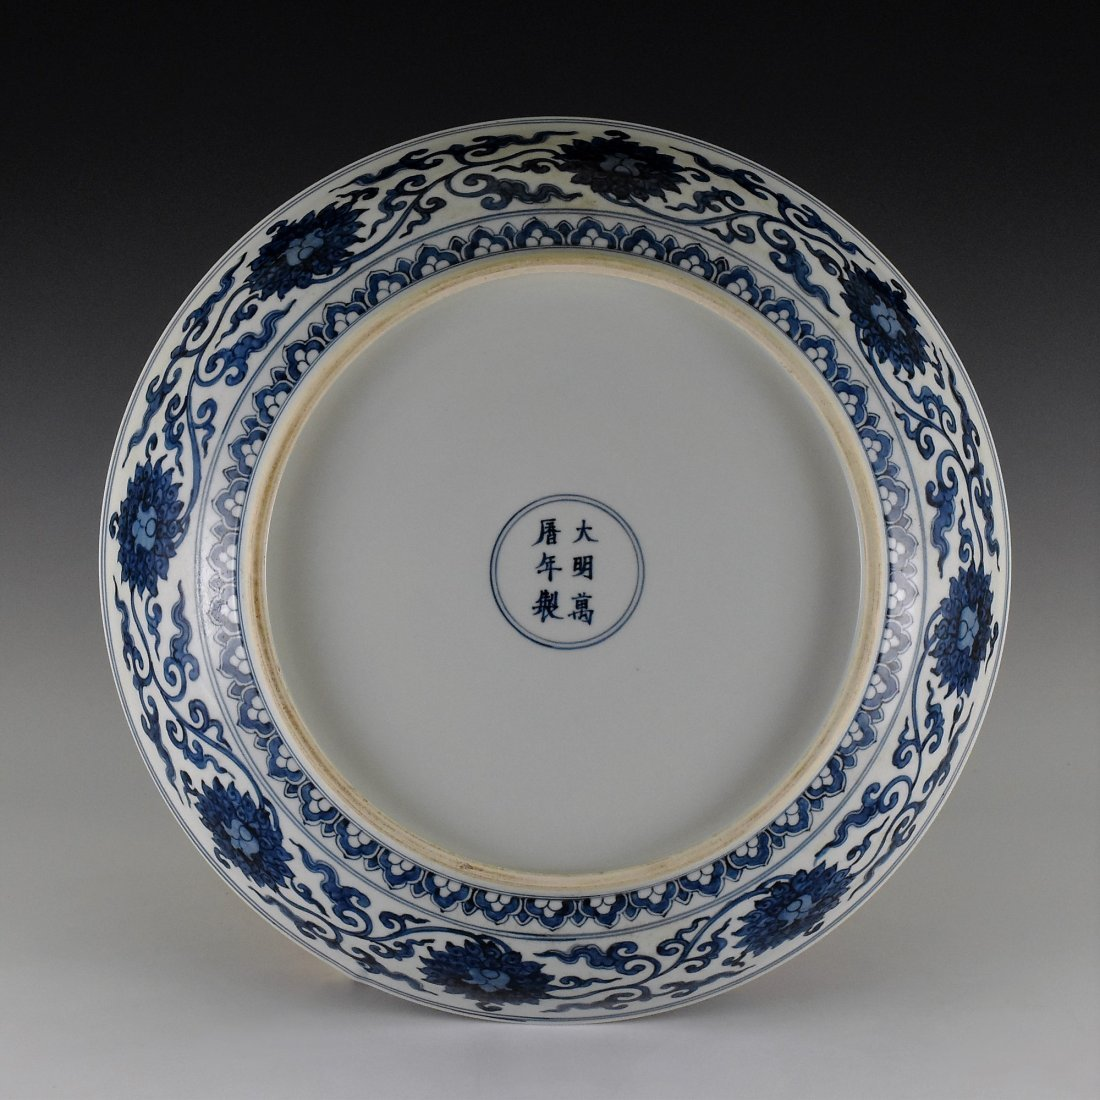 MING BLUE AND WHITE KIRIN PORCELAIN CHARGER - 2